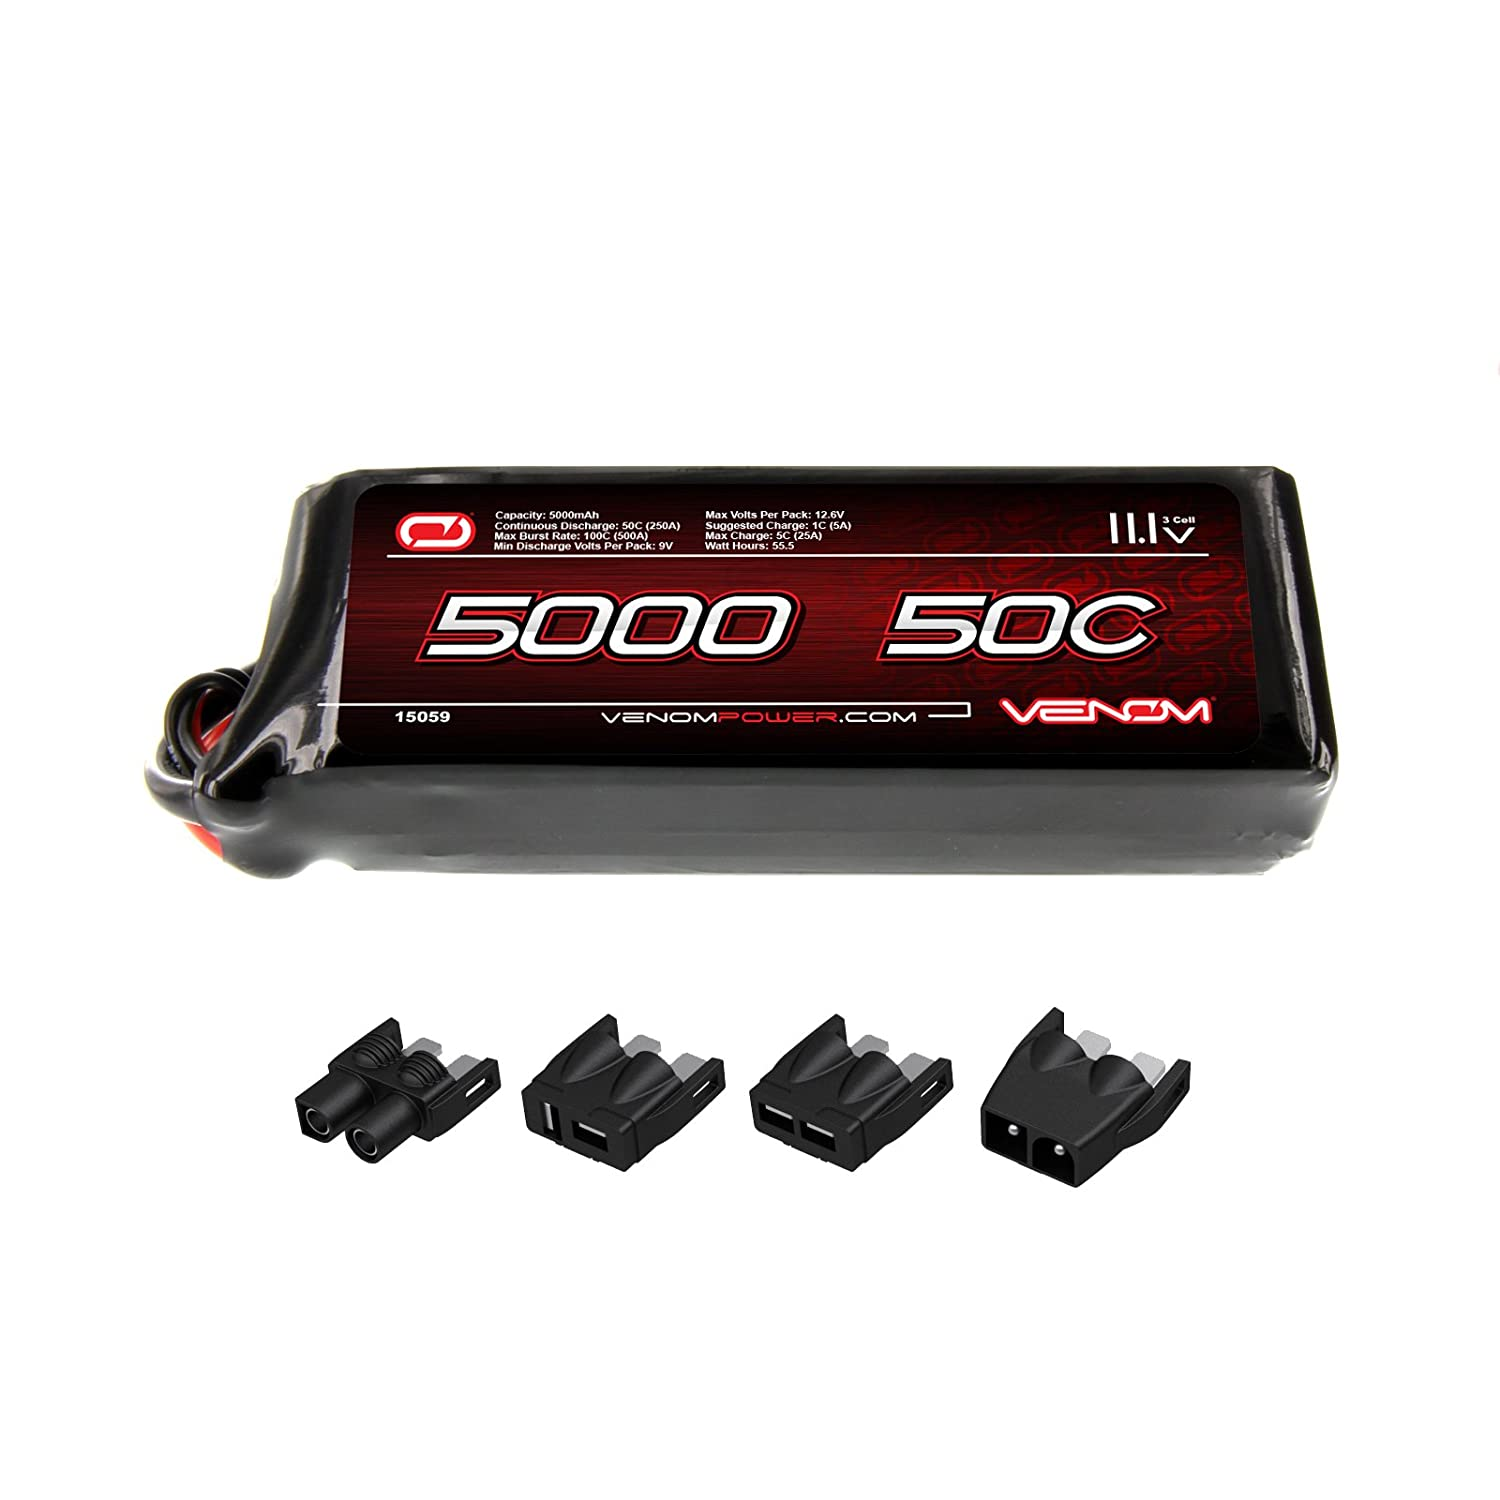 Amazon Venom 50C 3S 5000mAh 11 1V LiPo Battery with Universal Plug EC3 Deans Traxxas Tamiya Toys & Games